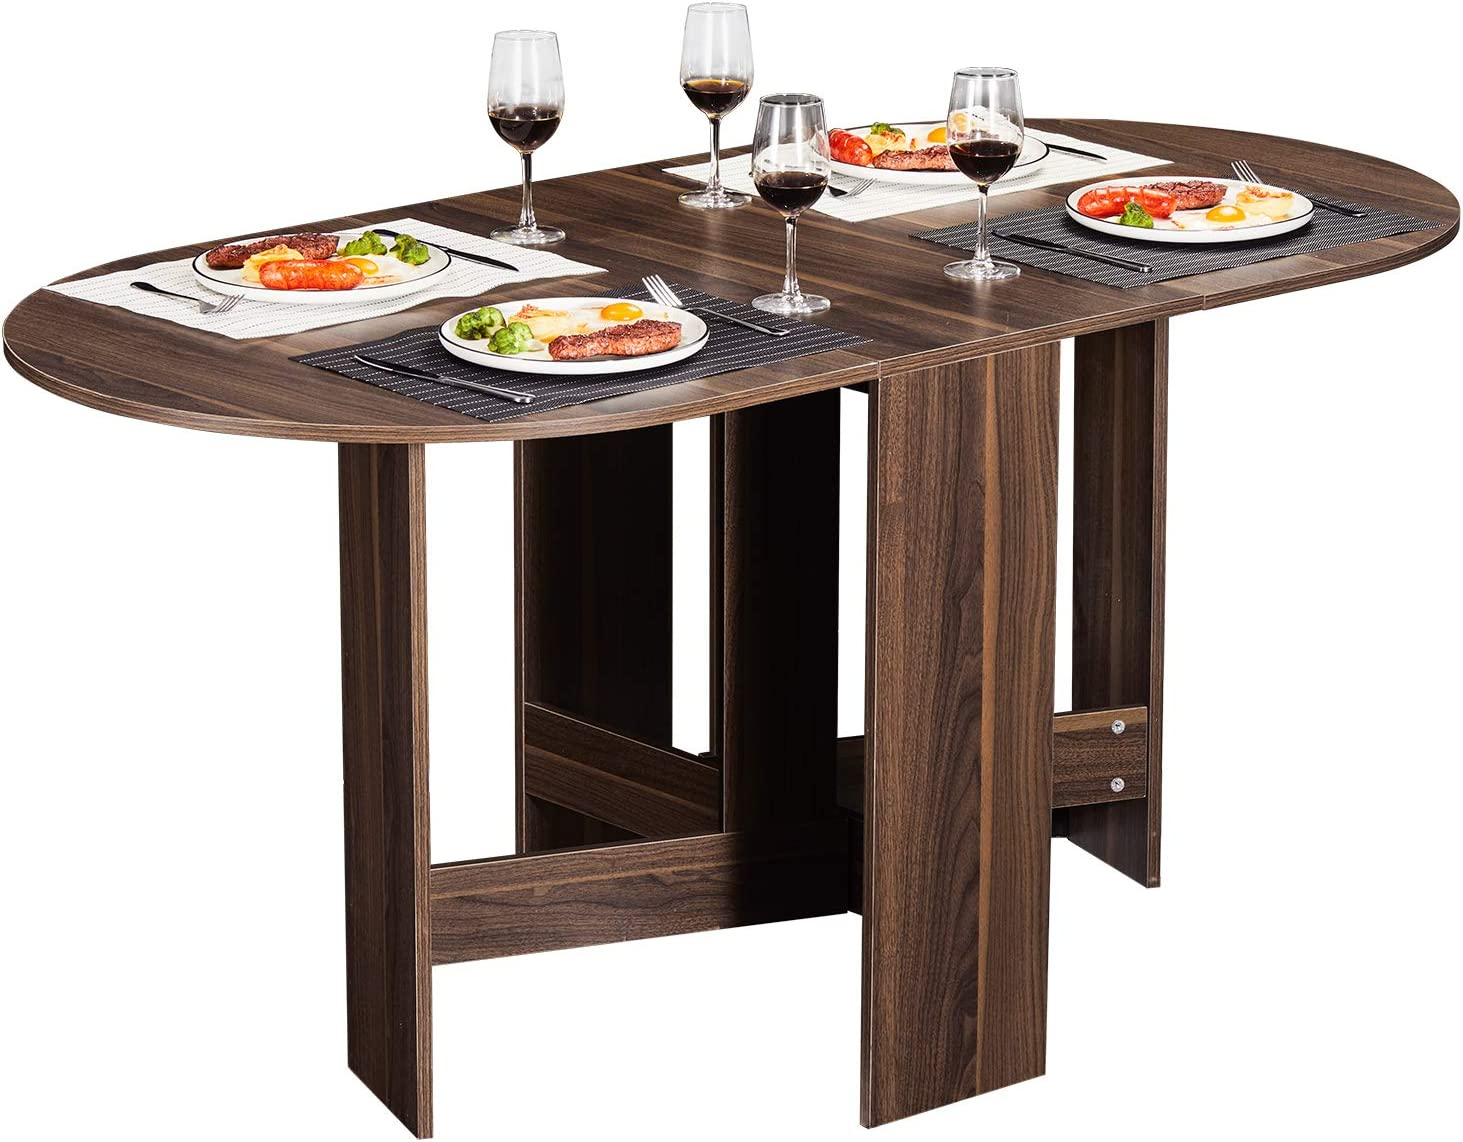 Amazon Com Tiptiper Folding Dining Table Extendable Dinner Table With Wood Grain And Round Edges Design Space Saving Versatile Kitchen Table Tables